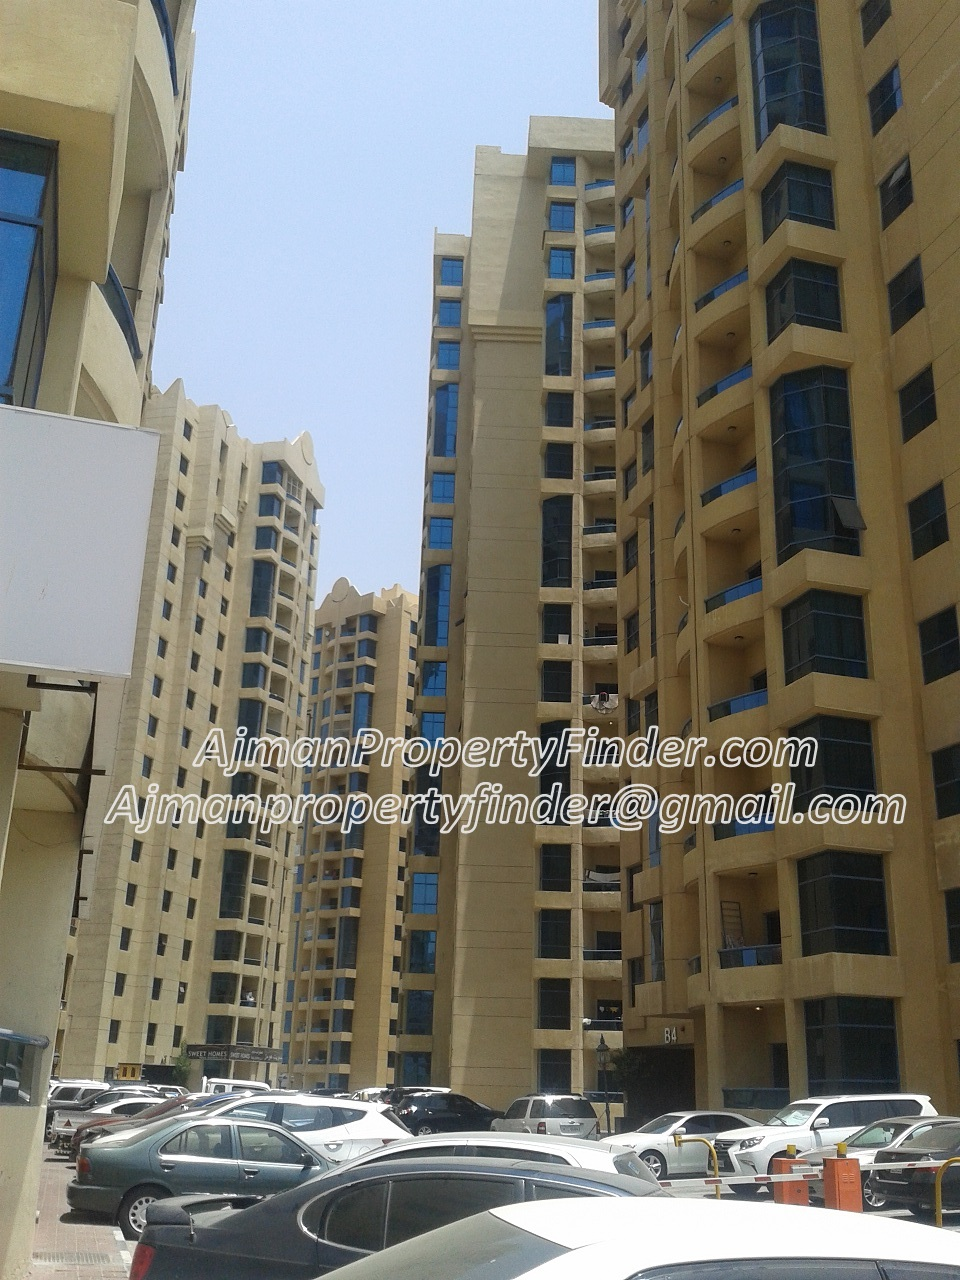 1 Bhk for Sale in Al Khor Towers Ajman   Freehold Property for Sale in Ajman